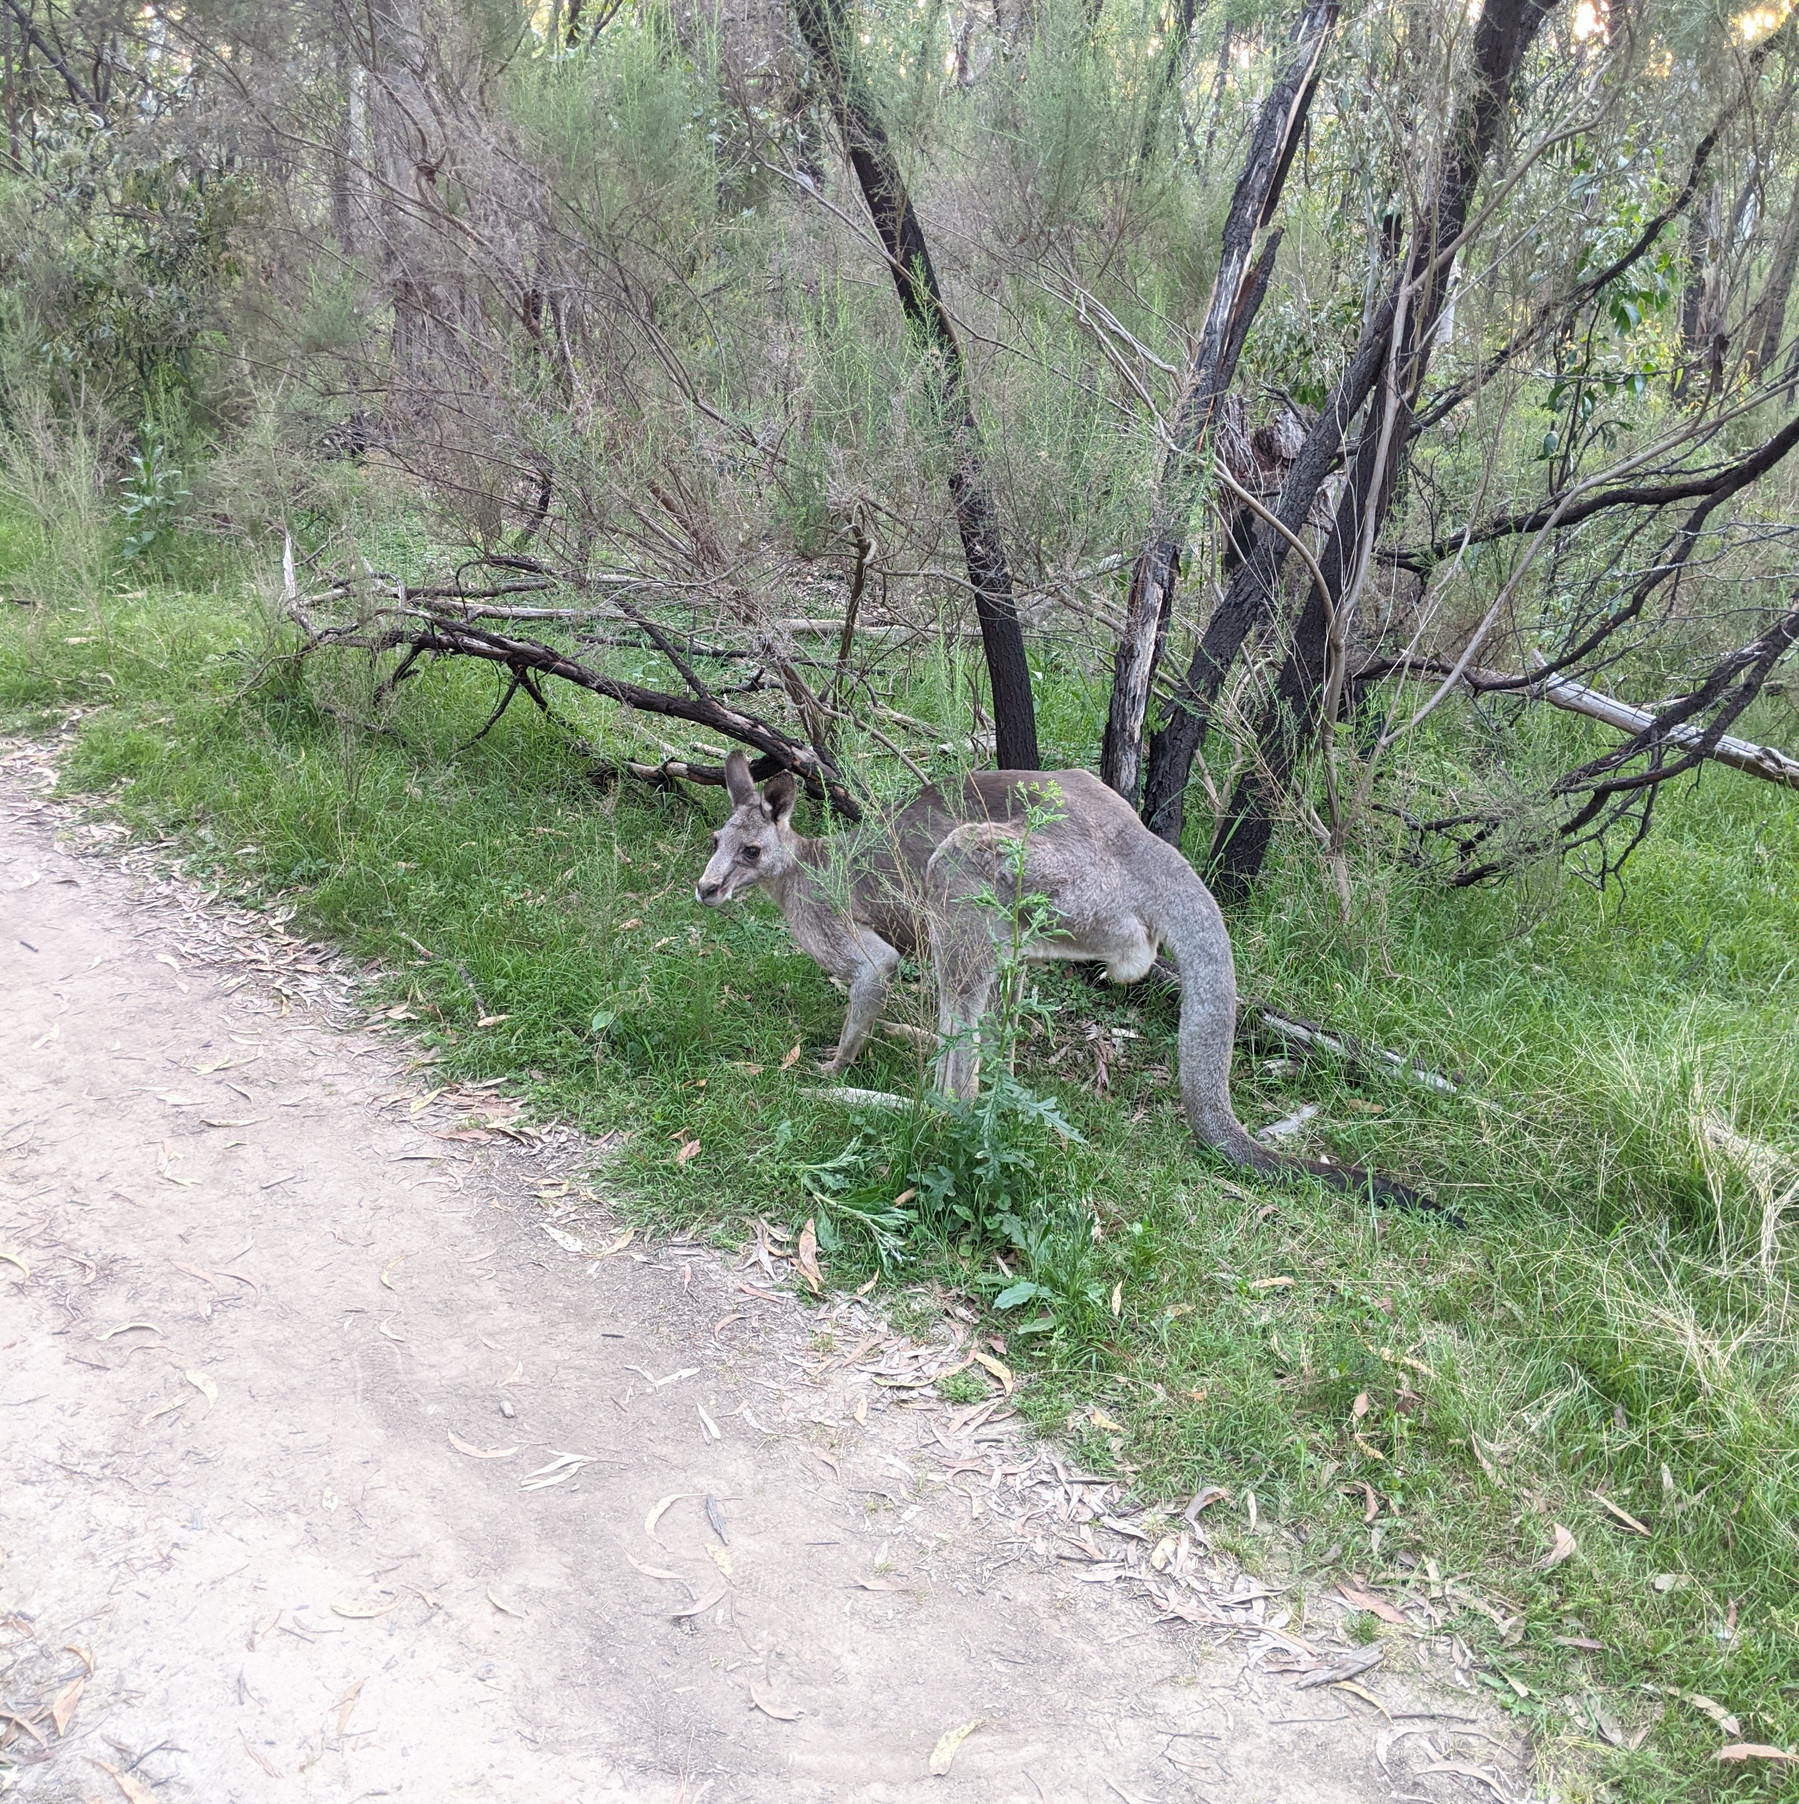 A kangaroo by a forest path